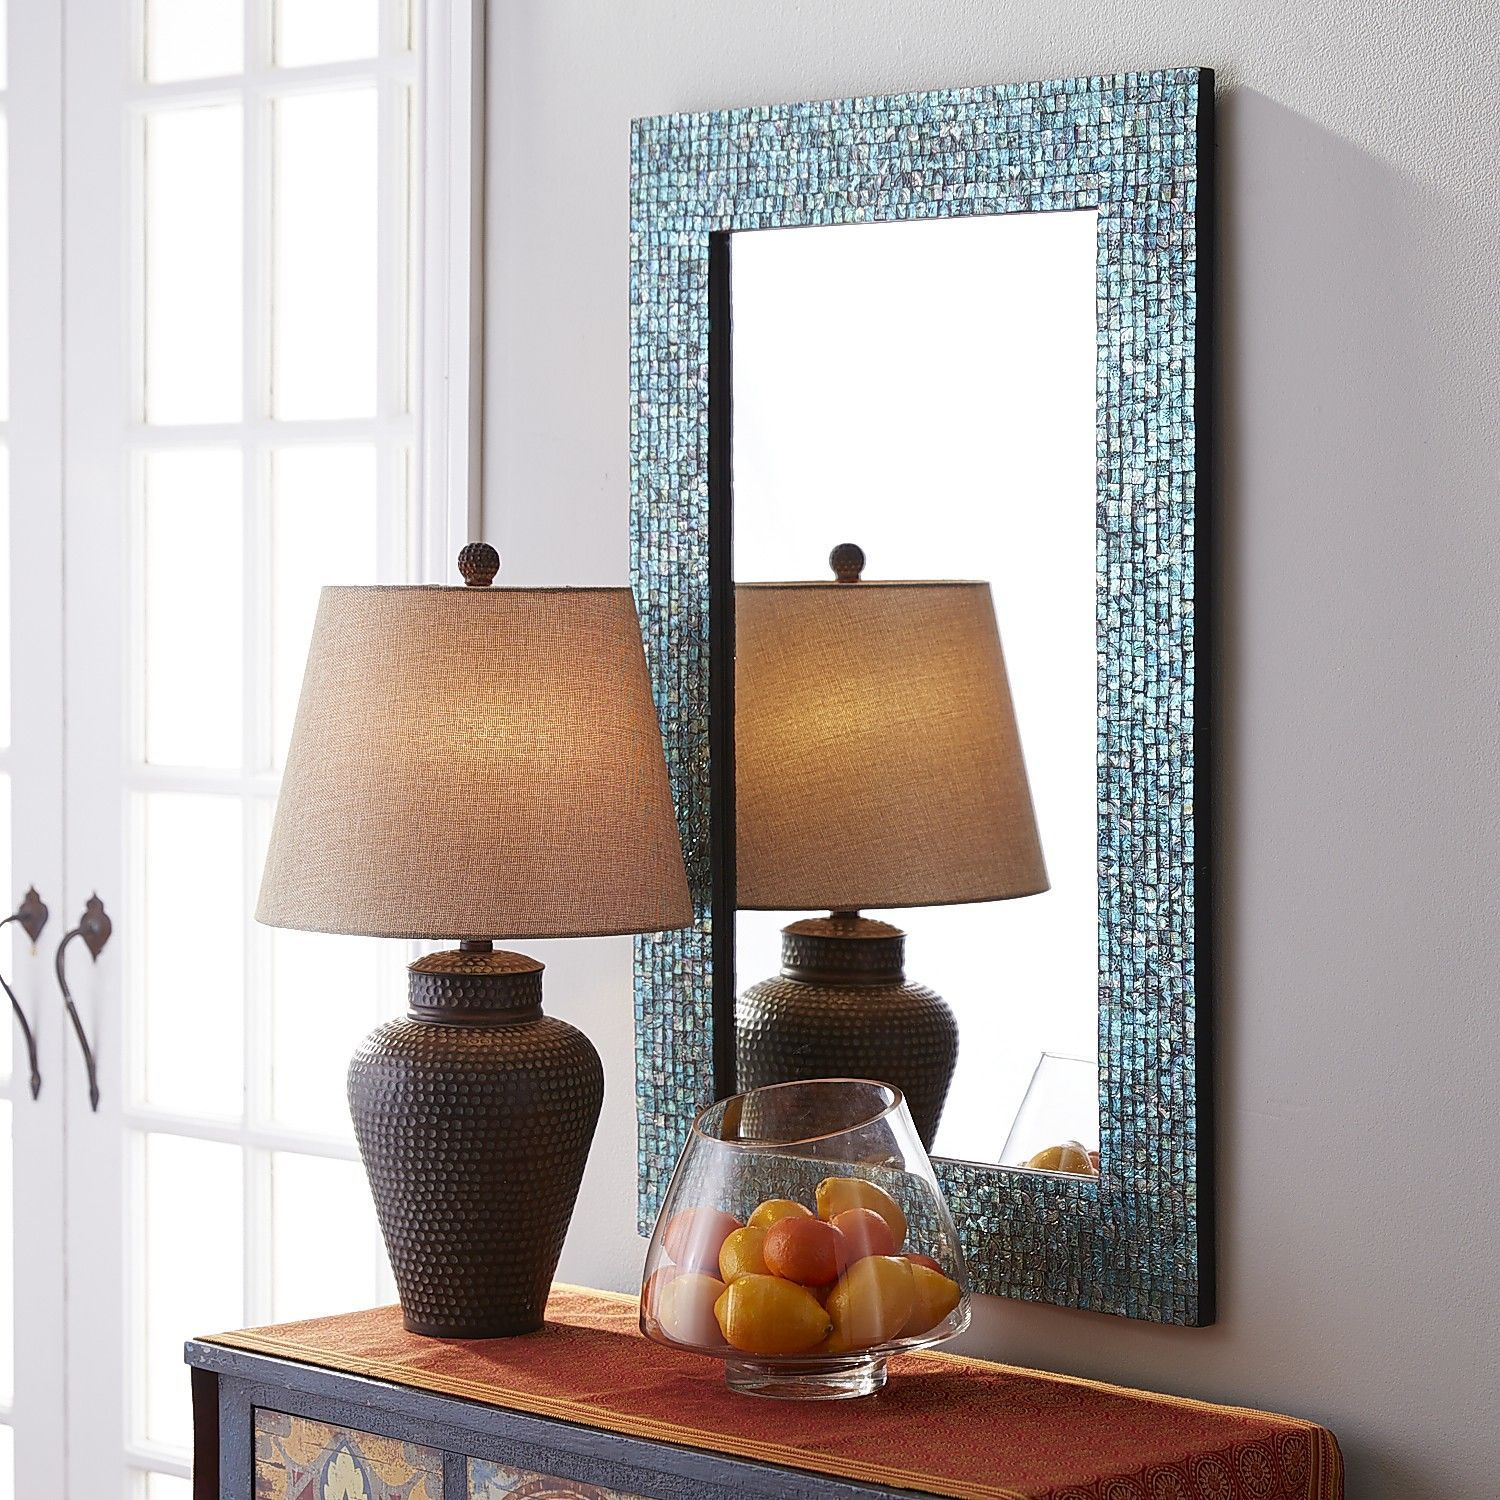 Our Shimmering Wall Mirror Evokes The Sight Of A Tropical